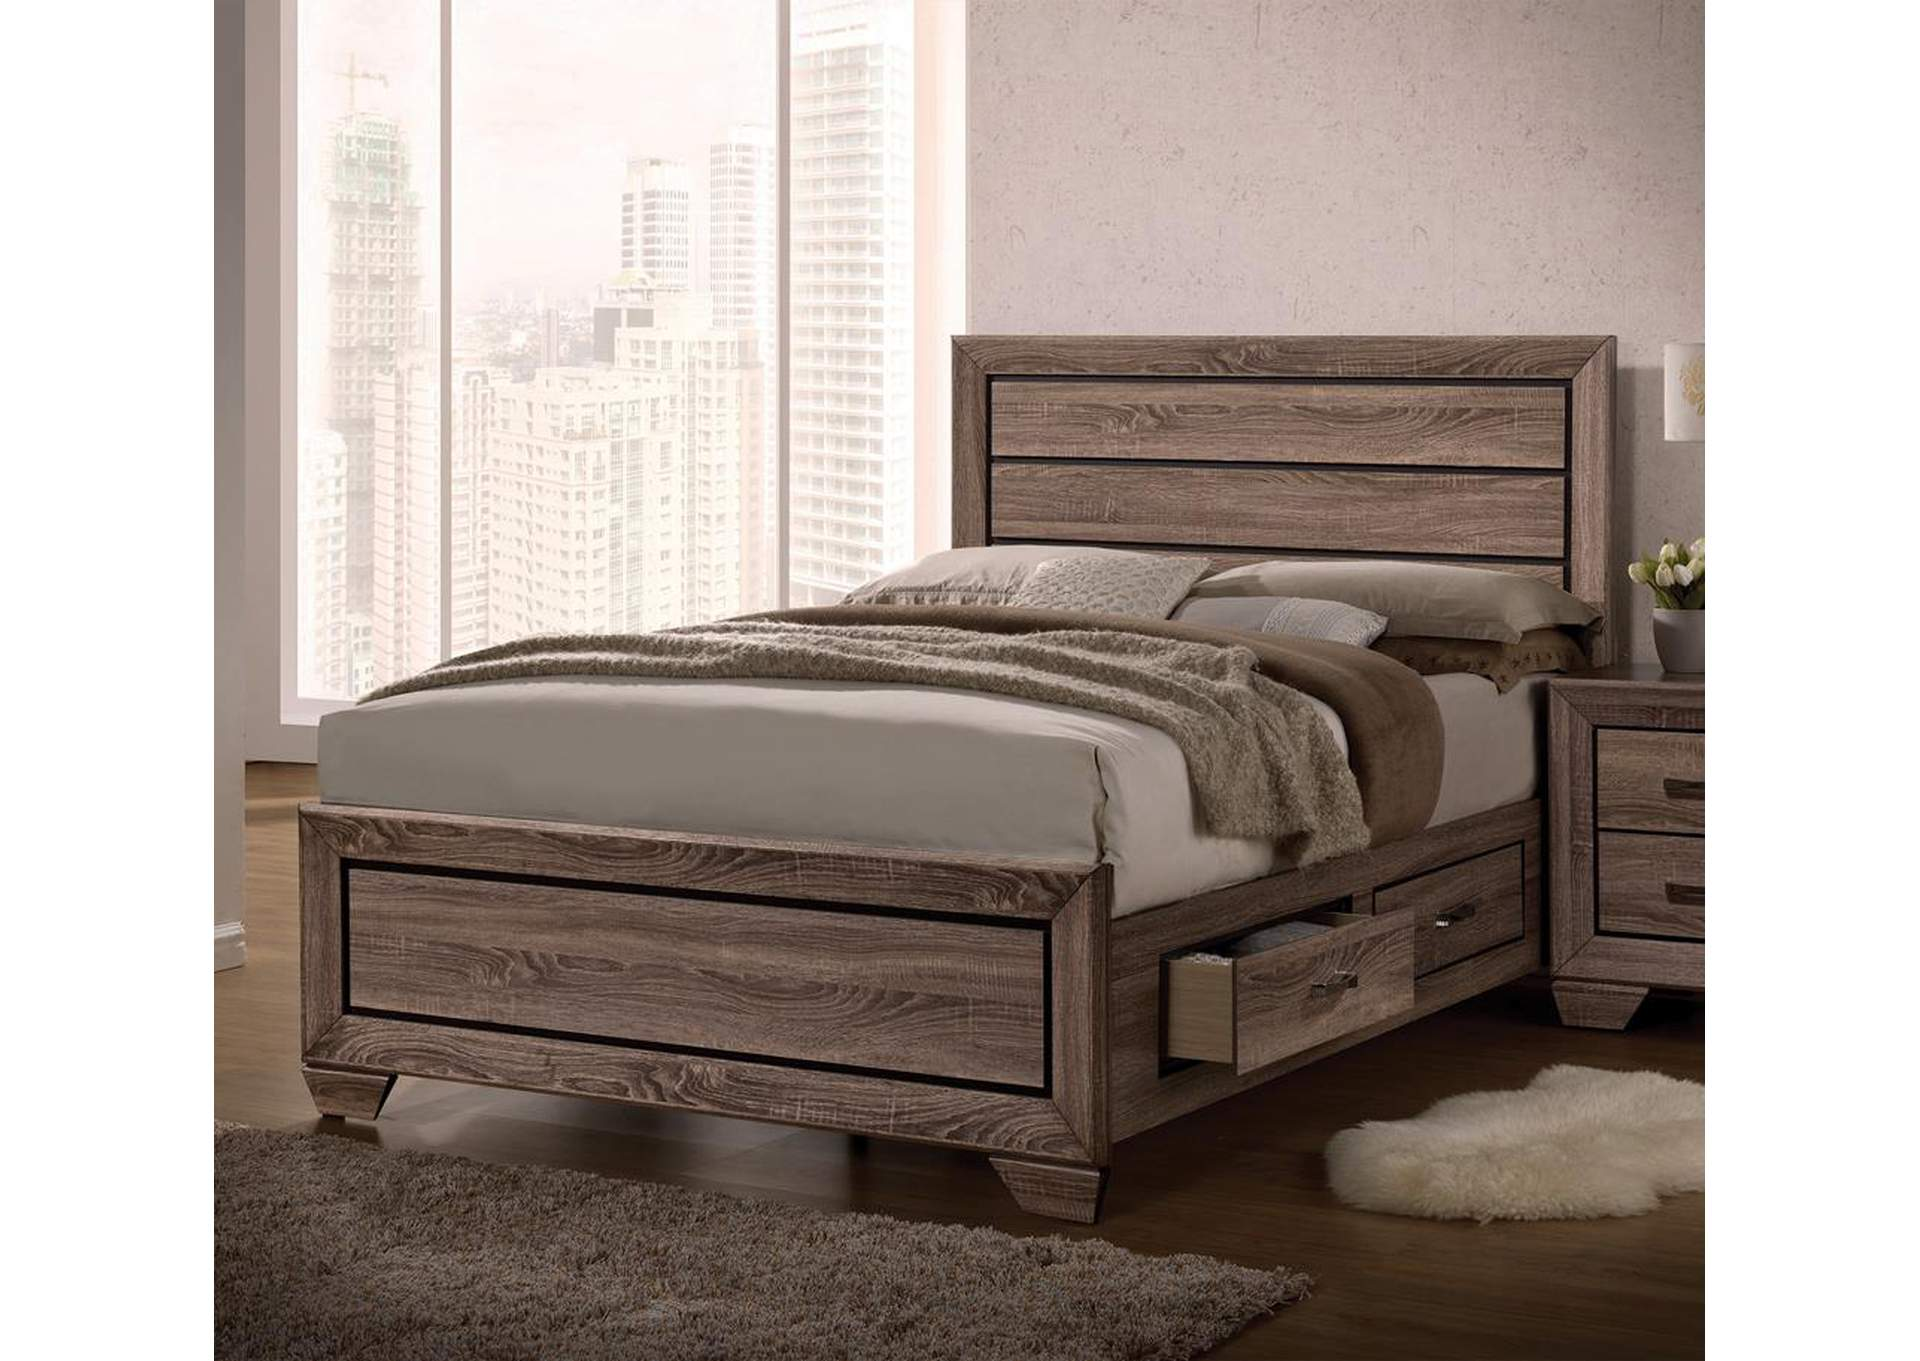 Kauffman Taupe Queen Bed,Coaster Furniture